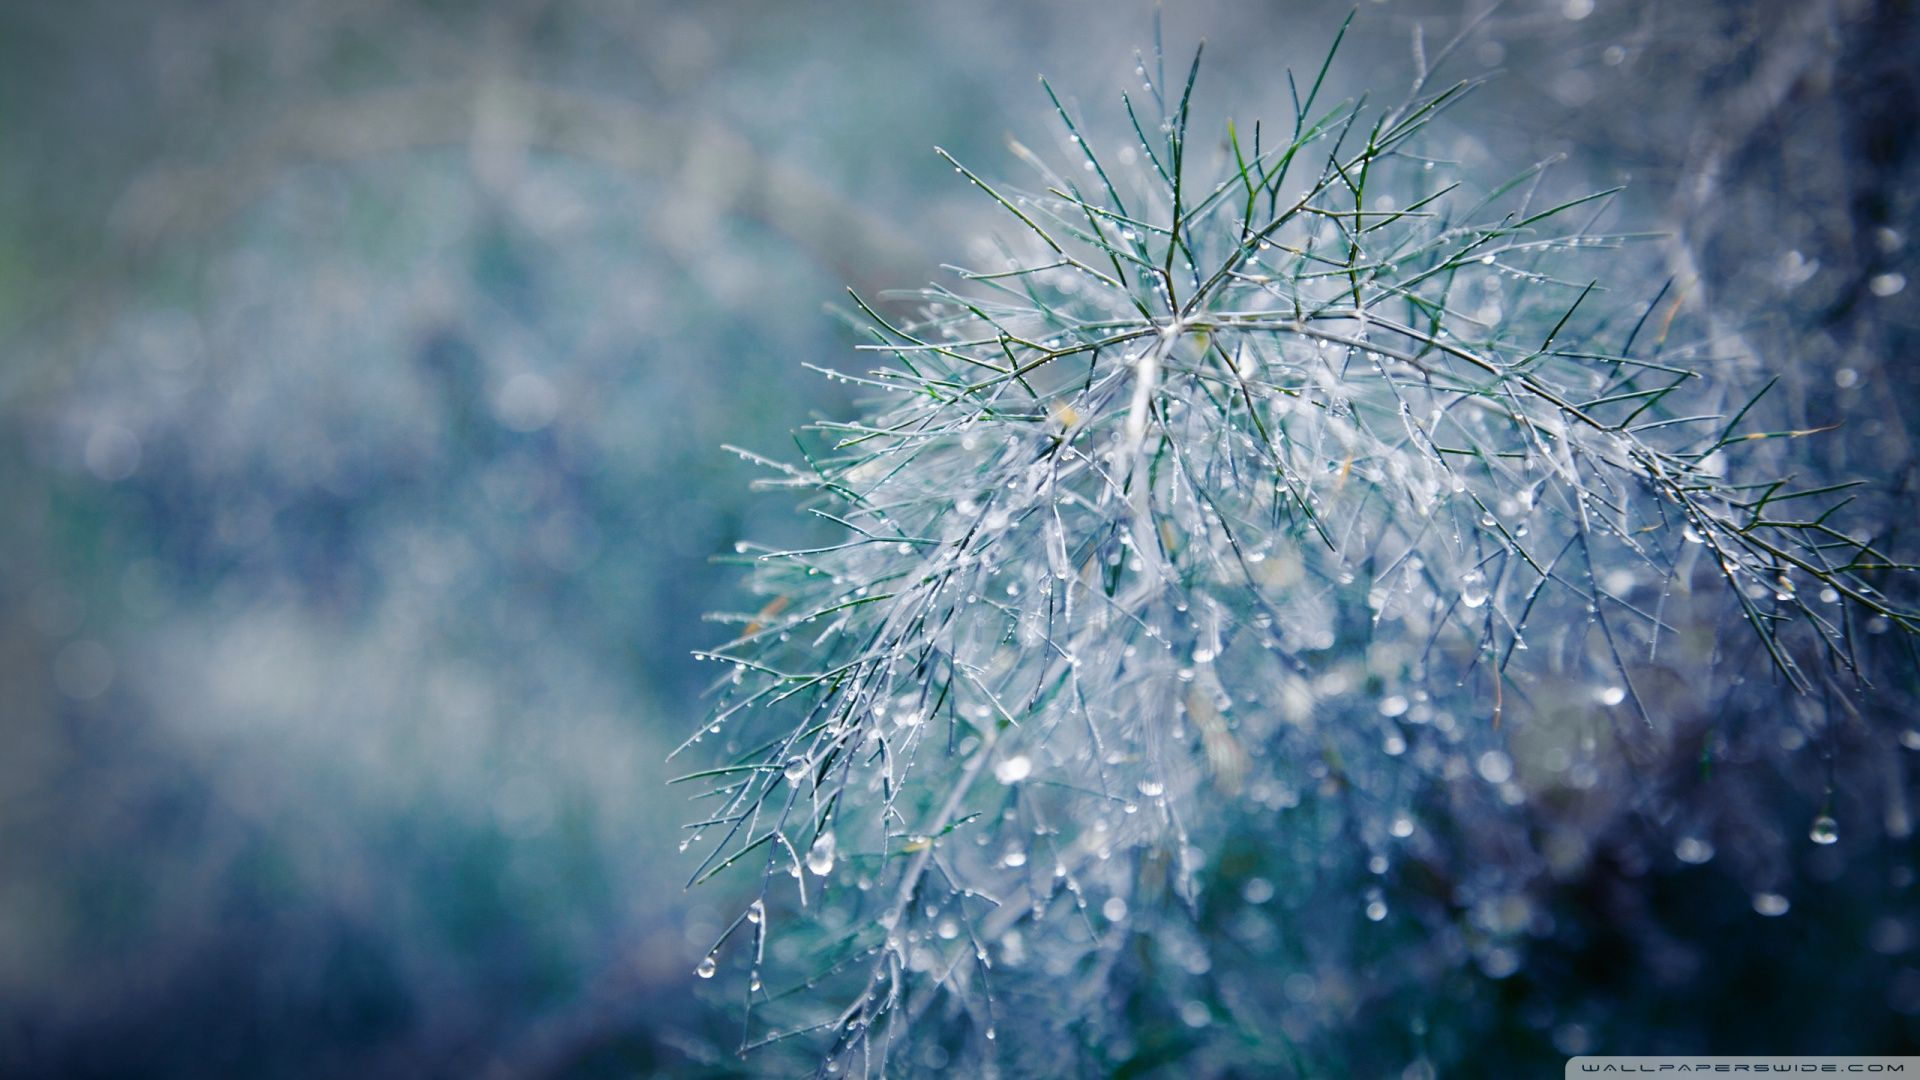 Rain Drops On Mirror Wallpapers x Обои